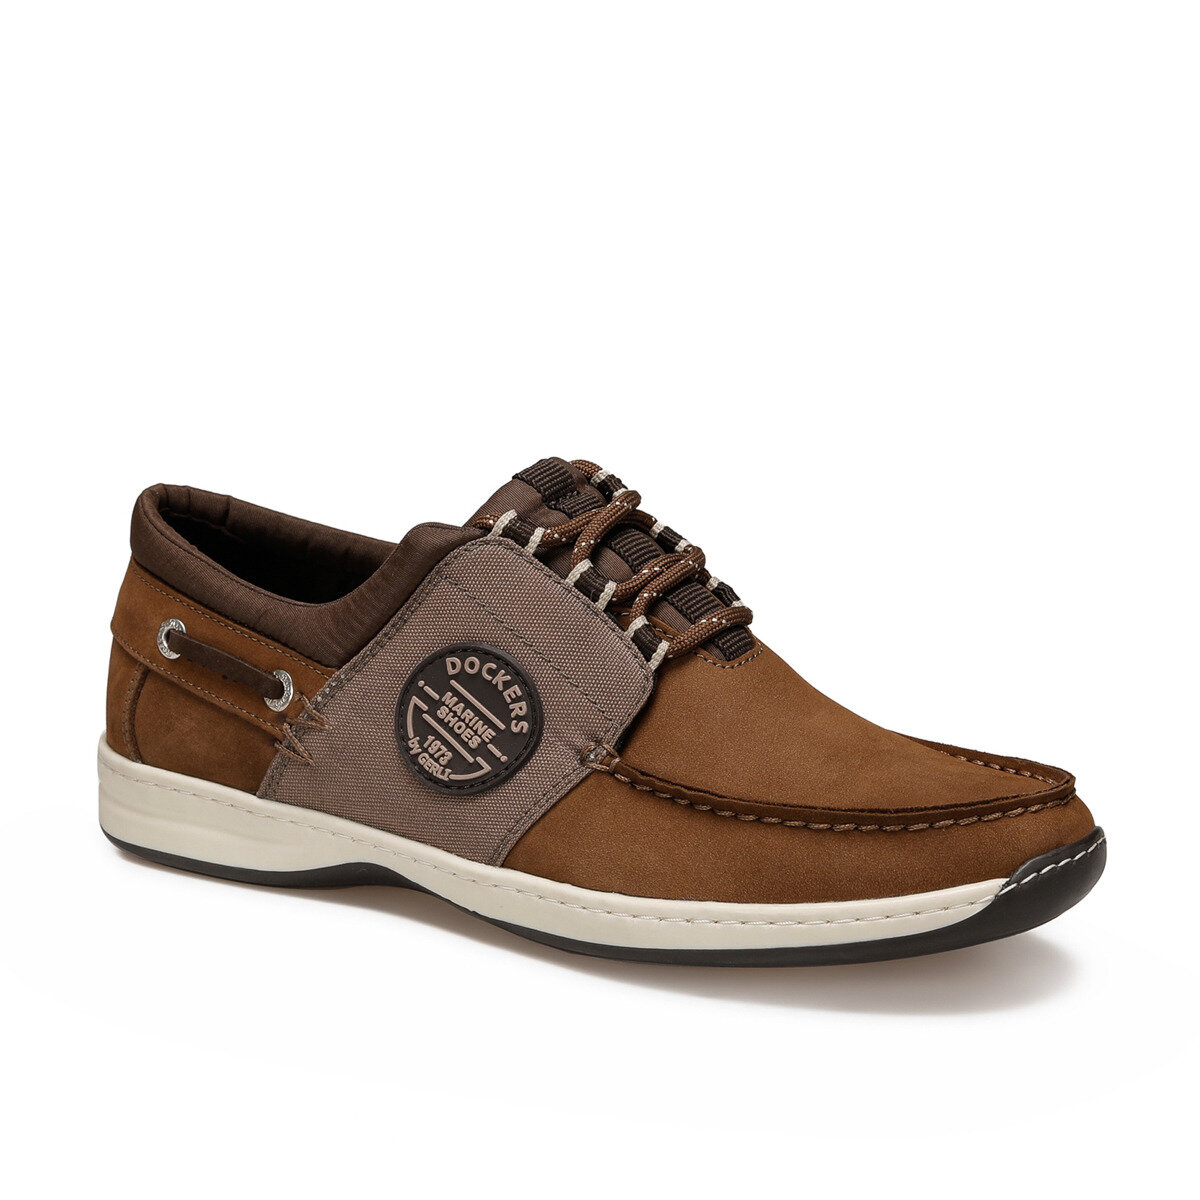 FLO 220100 Light Brown Men 'S Shoes By Dockers The Gerle